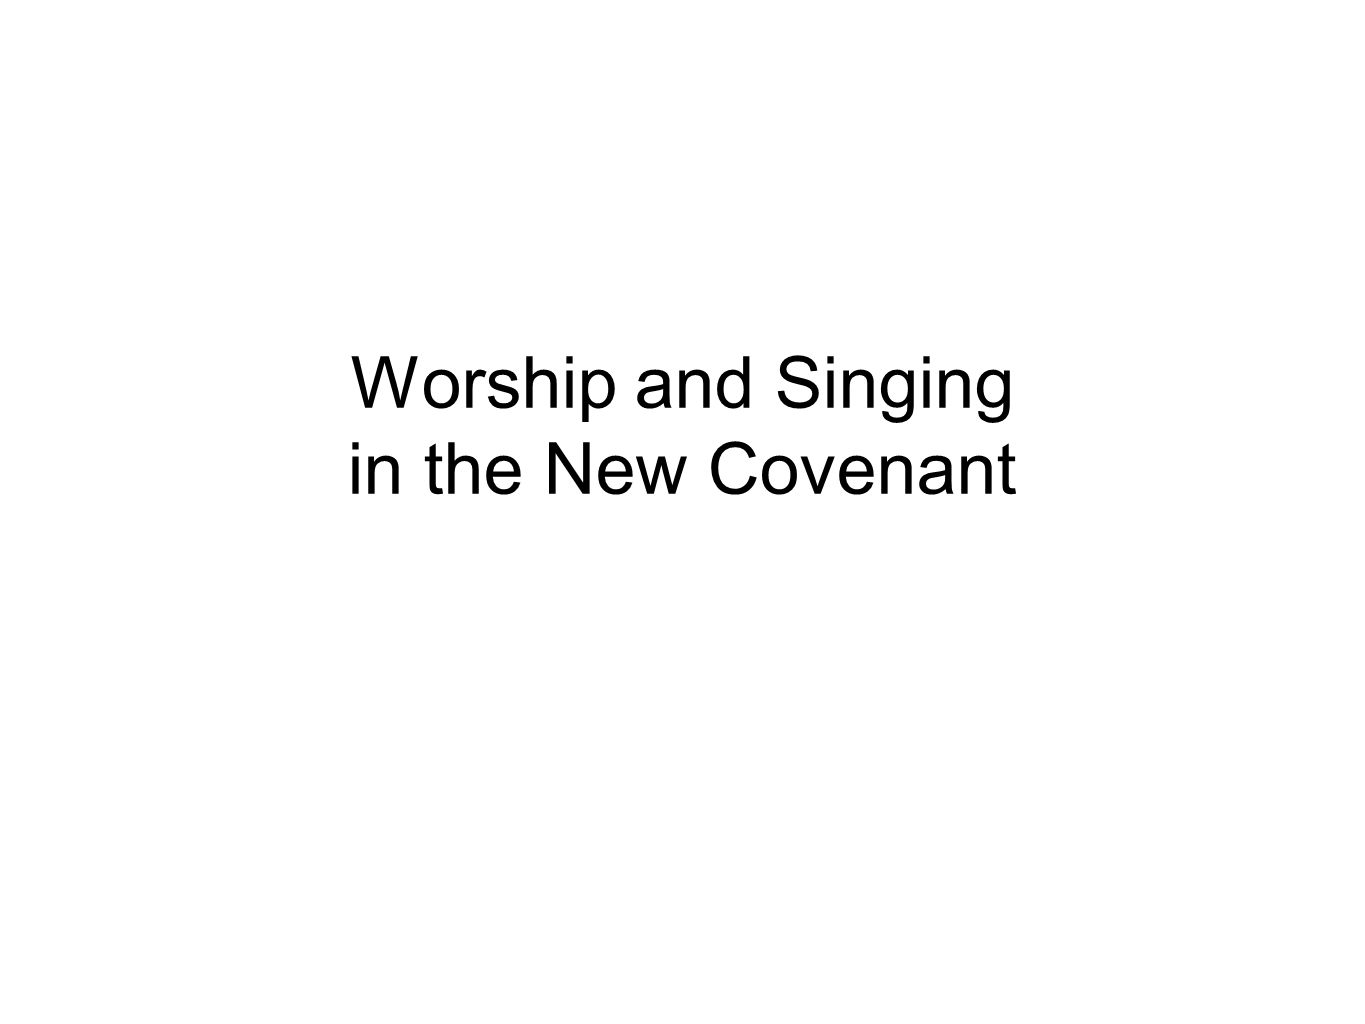 Worship and Singing in the New Covenant